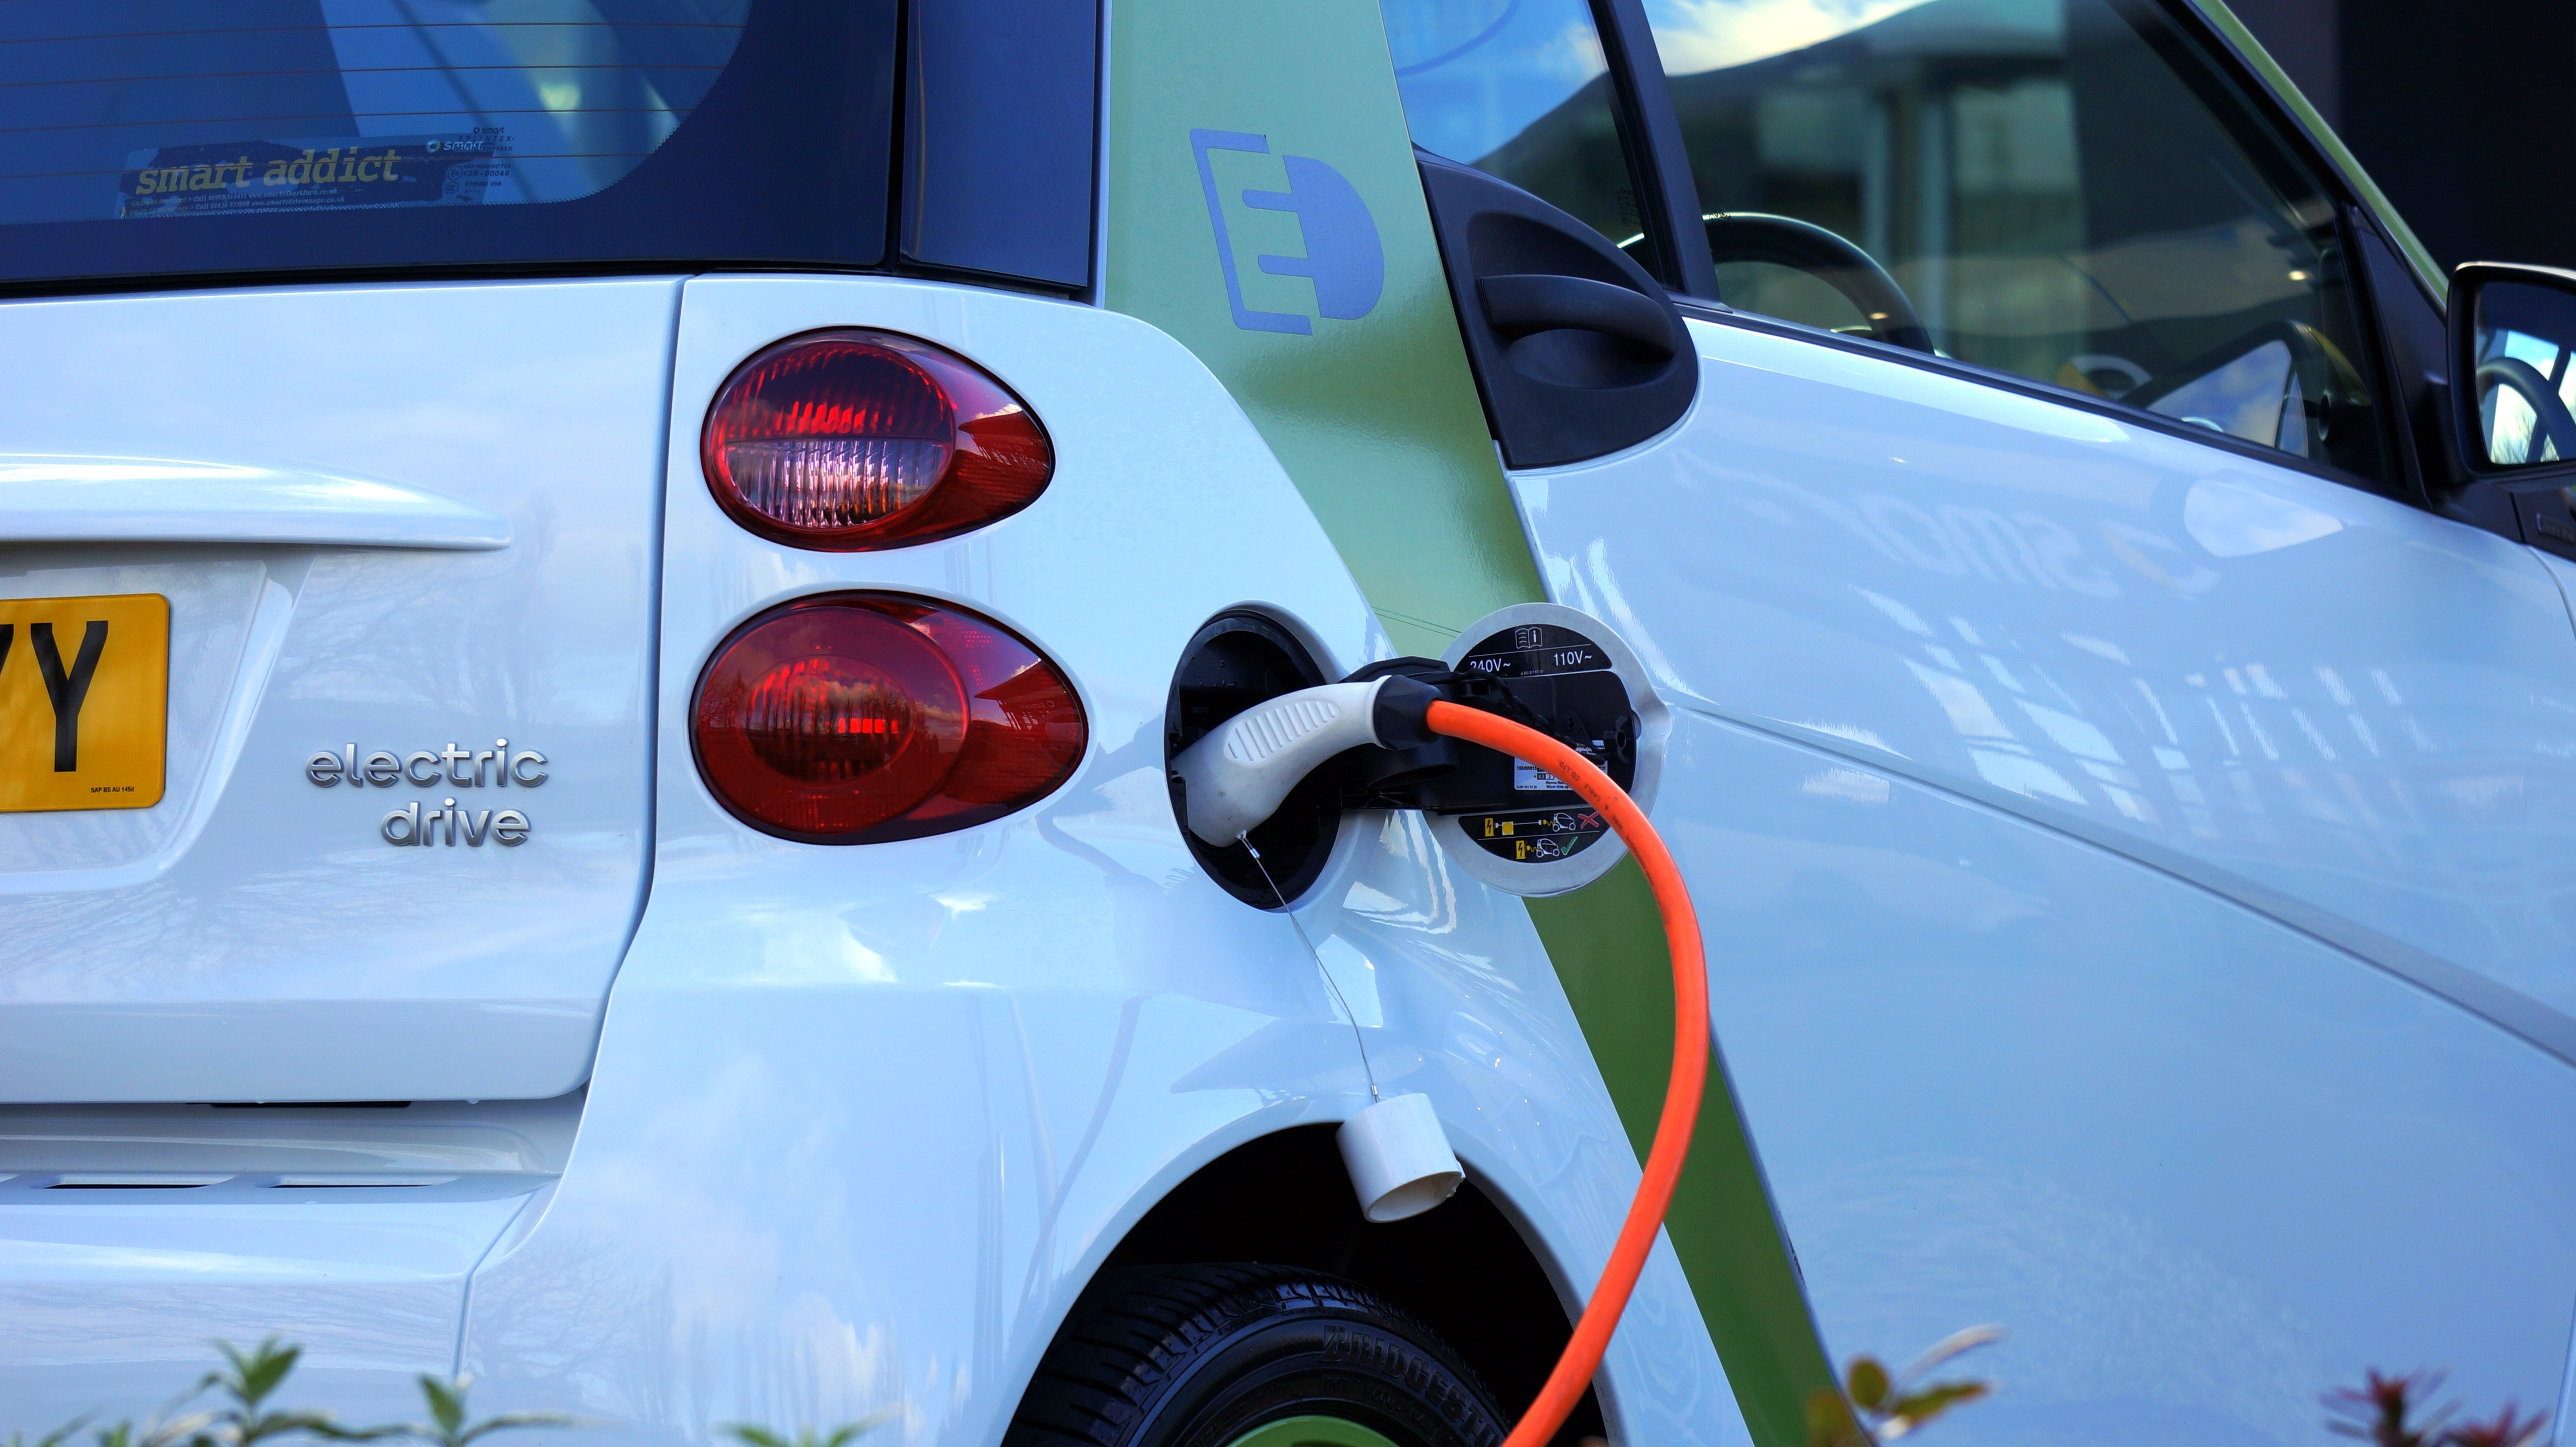 An in-depth review of the best electric car charging stations available in 2019.